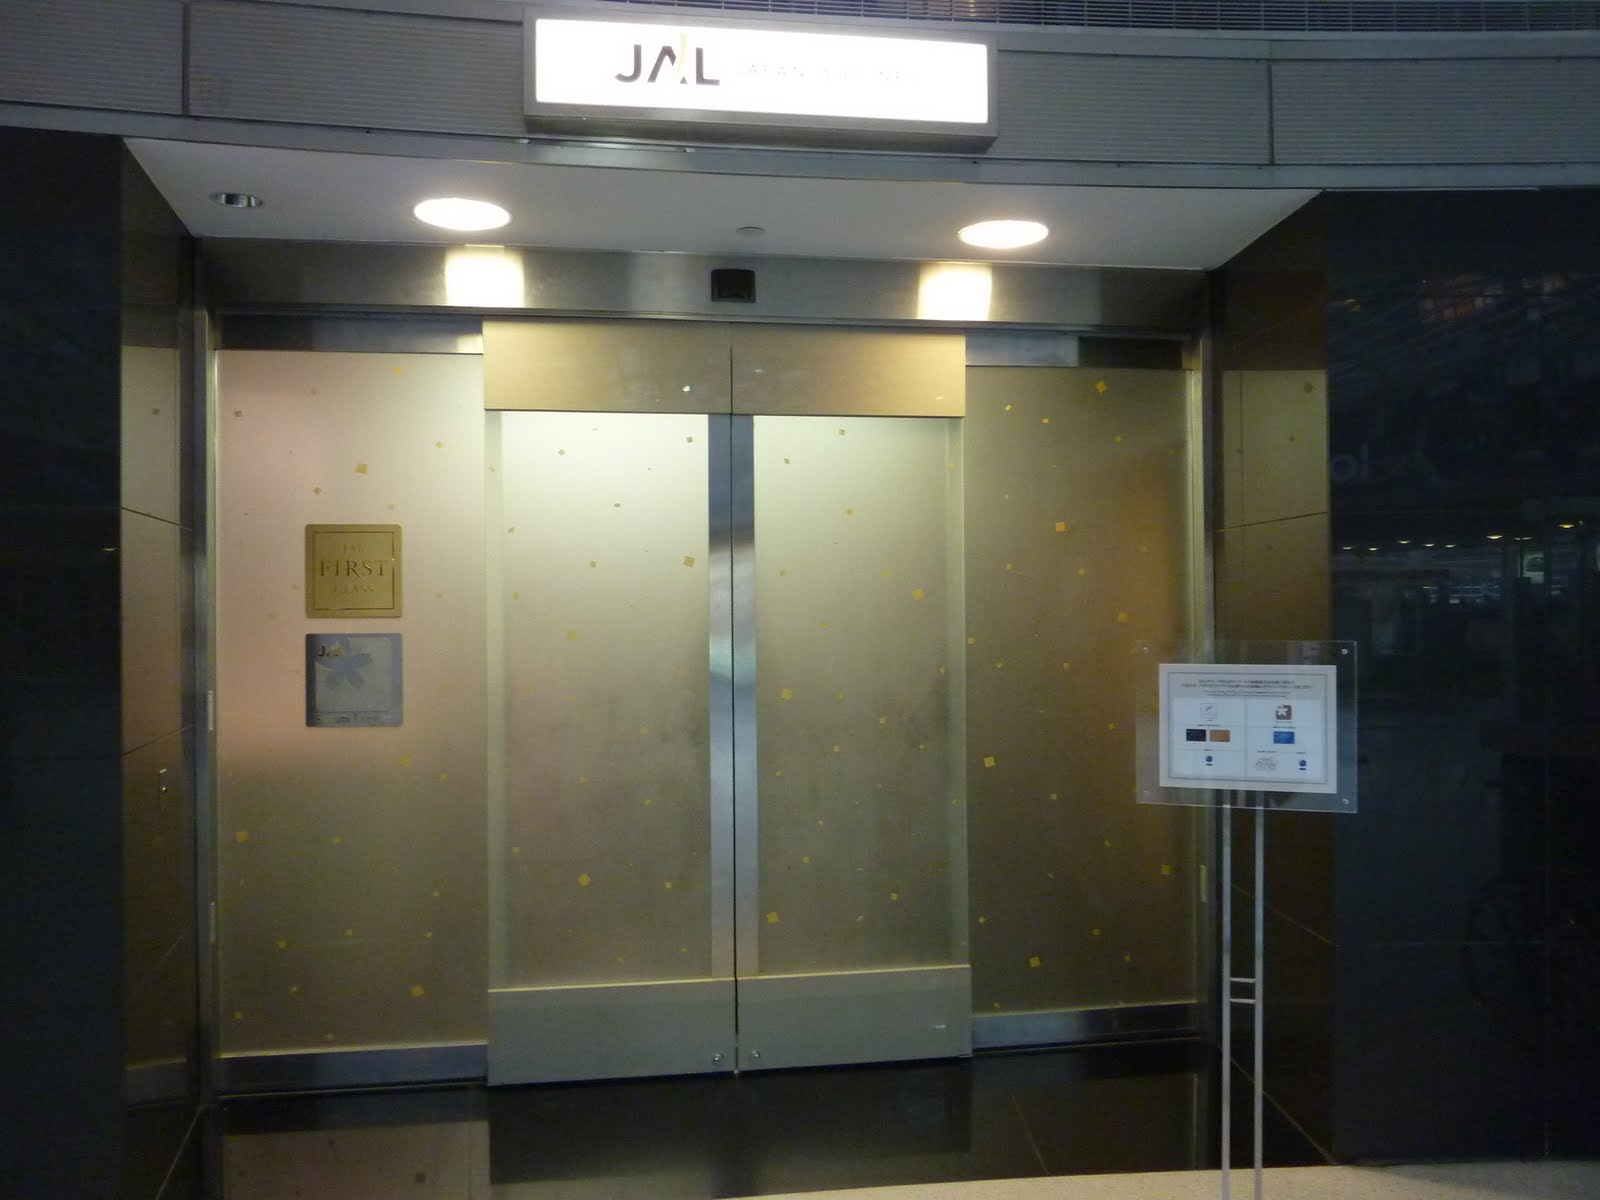 Airport Lounge In The World 【ジョン・f・ケネディ国際空港】jal Jalファースト